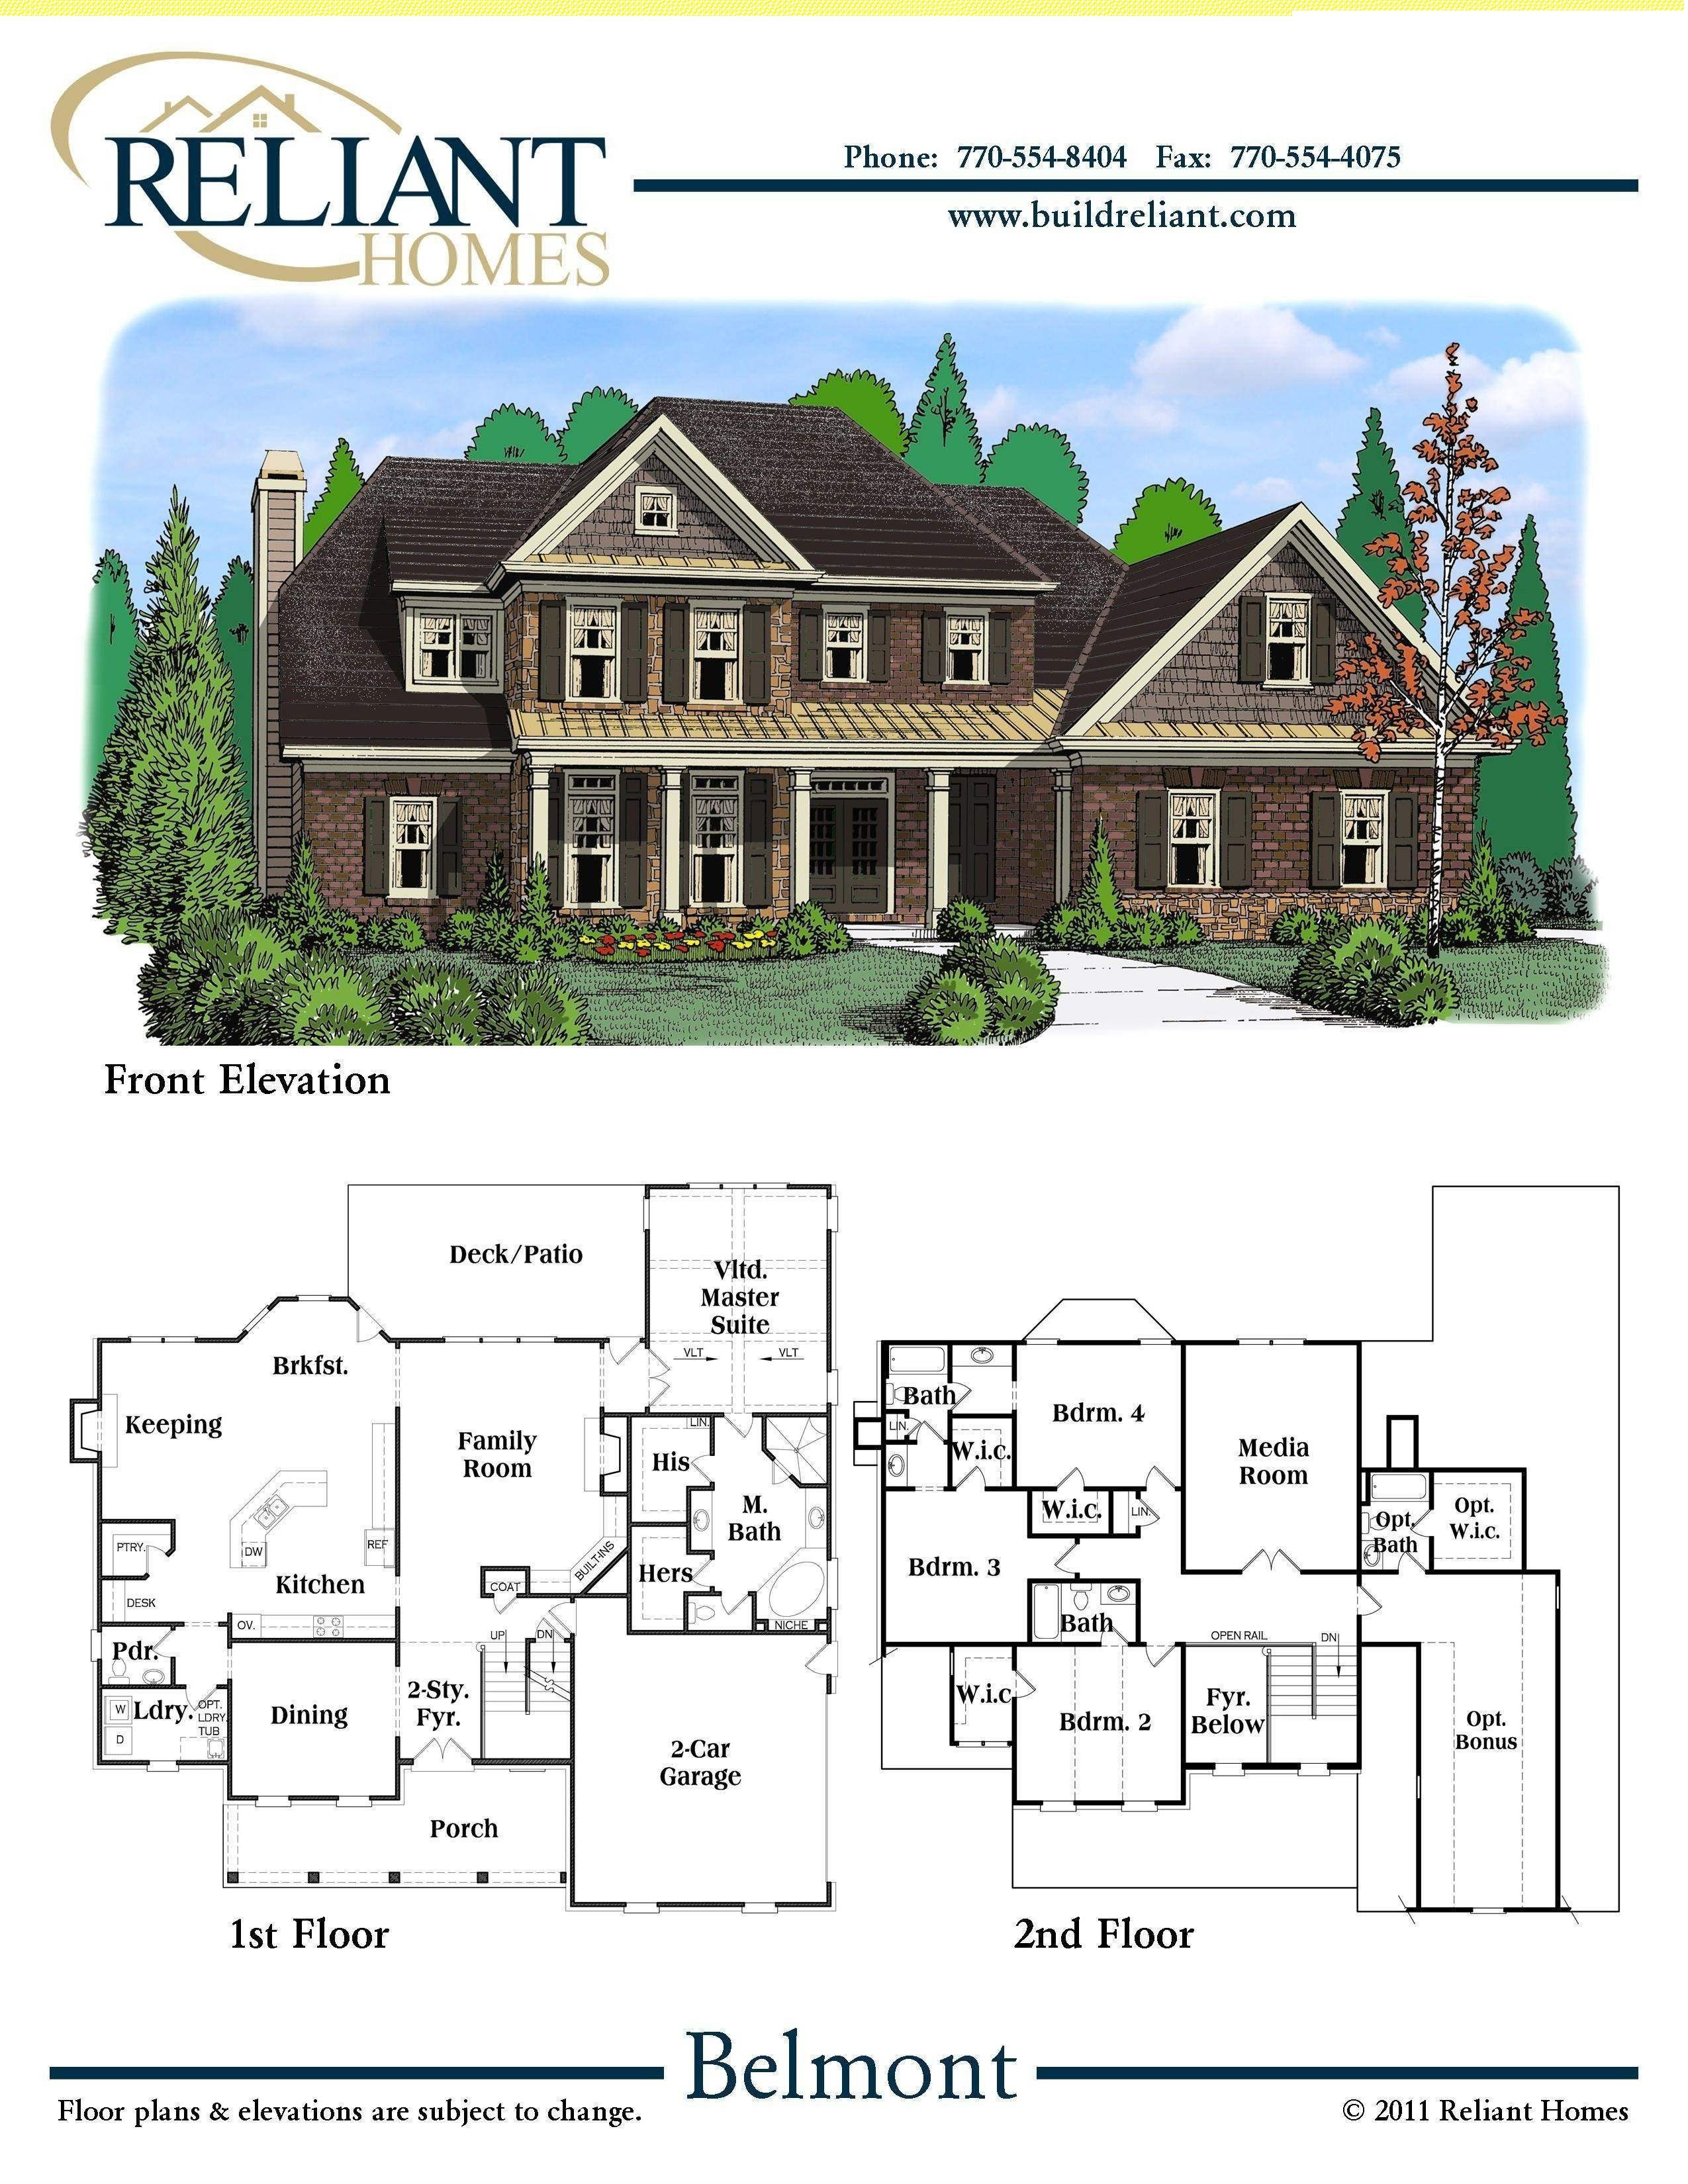 House Plans for Sale Awesome Reliant Homes the Belmont Plan Floor Plans